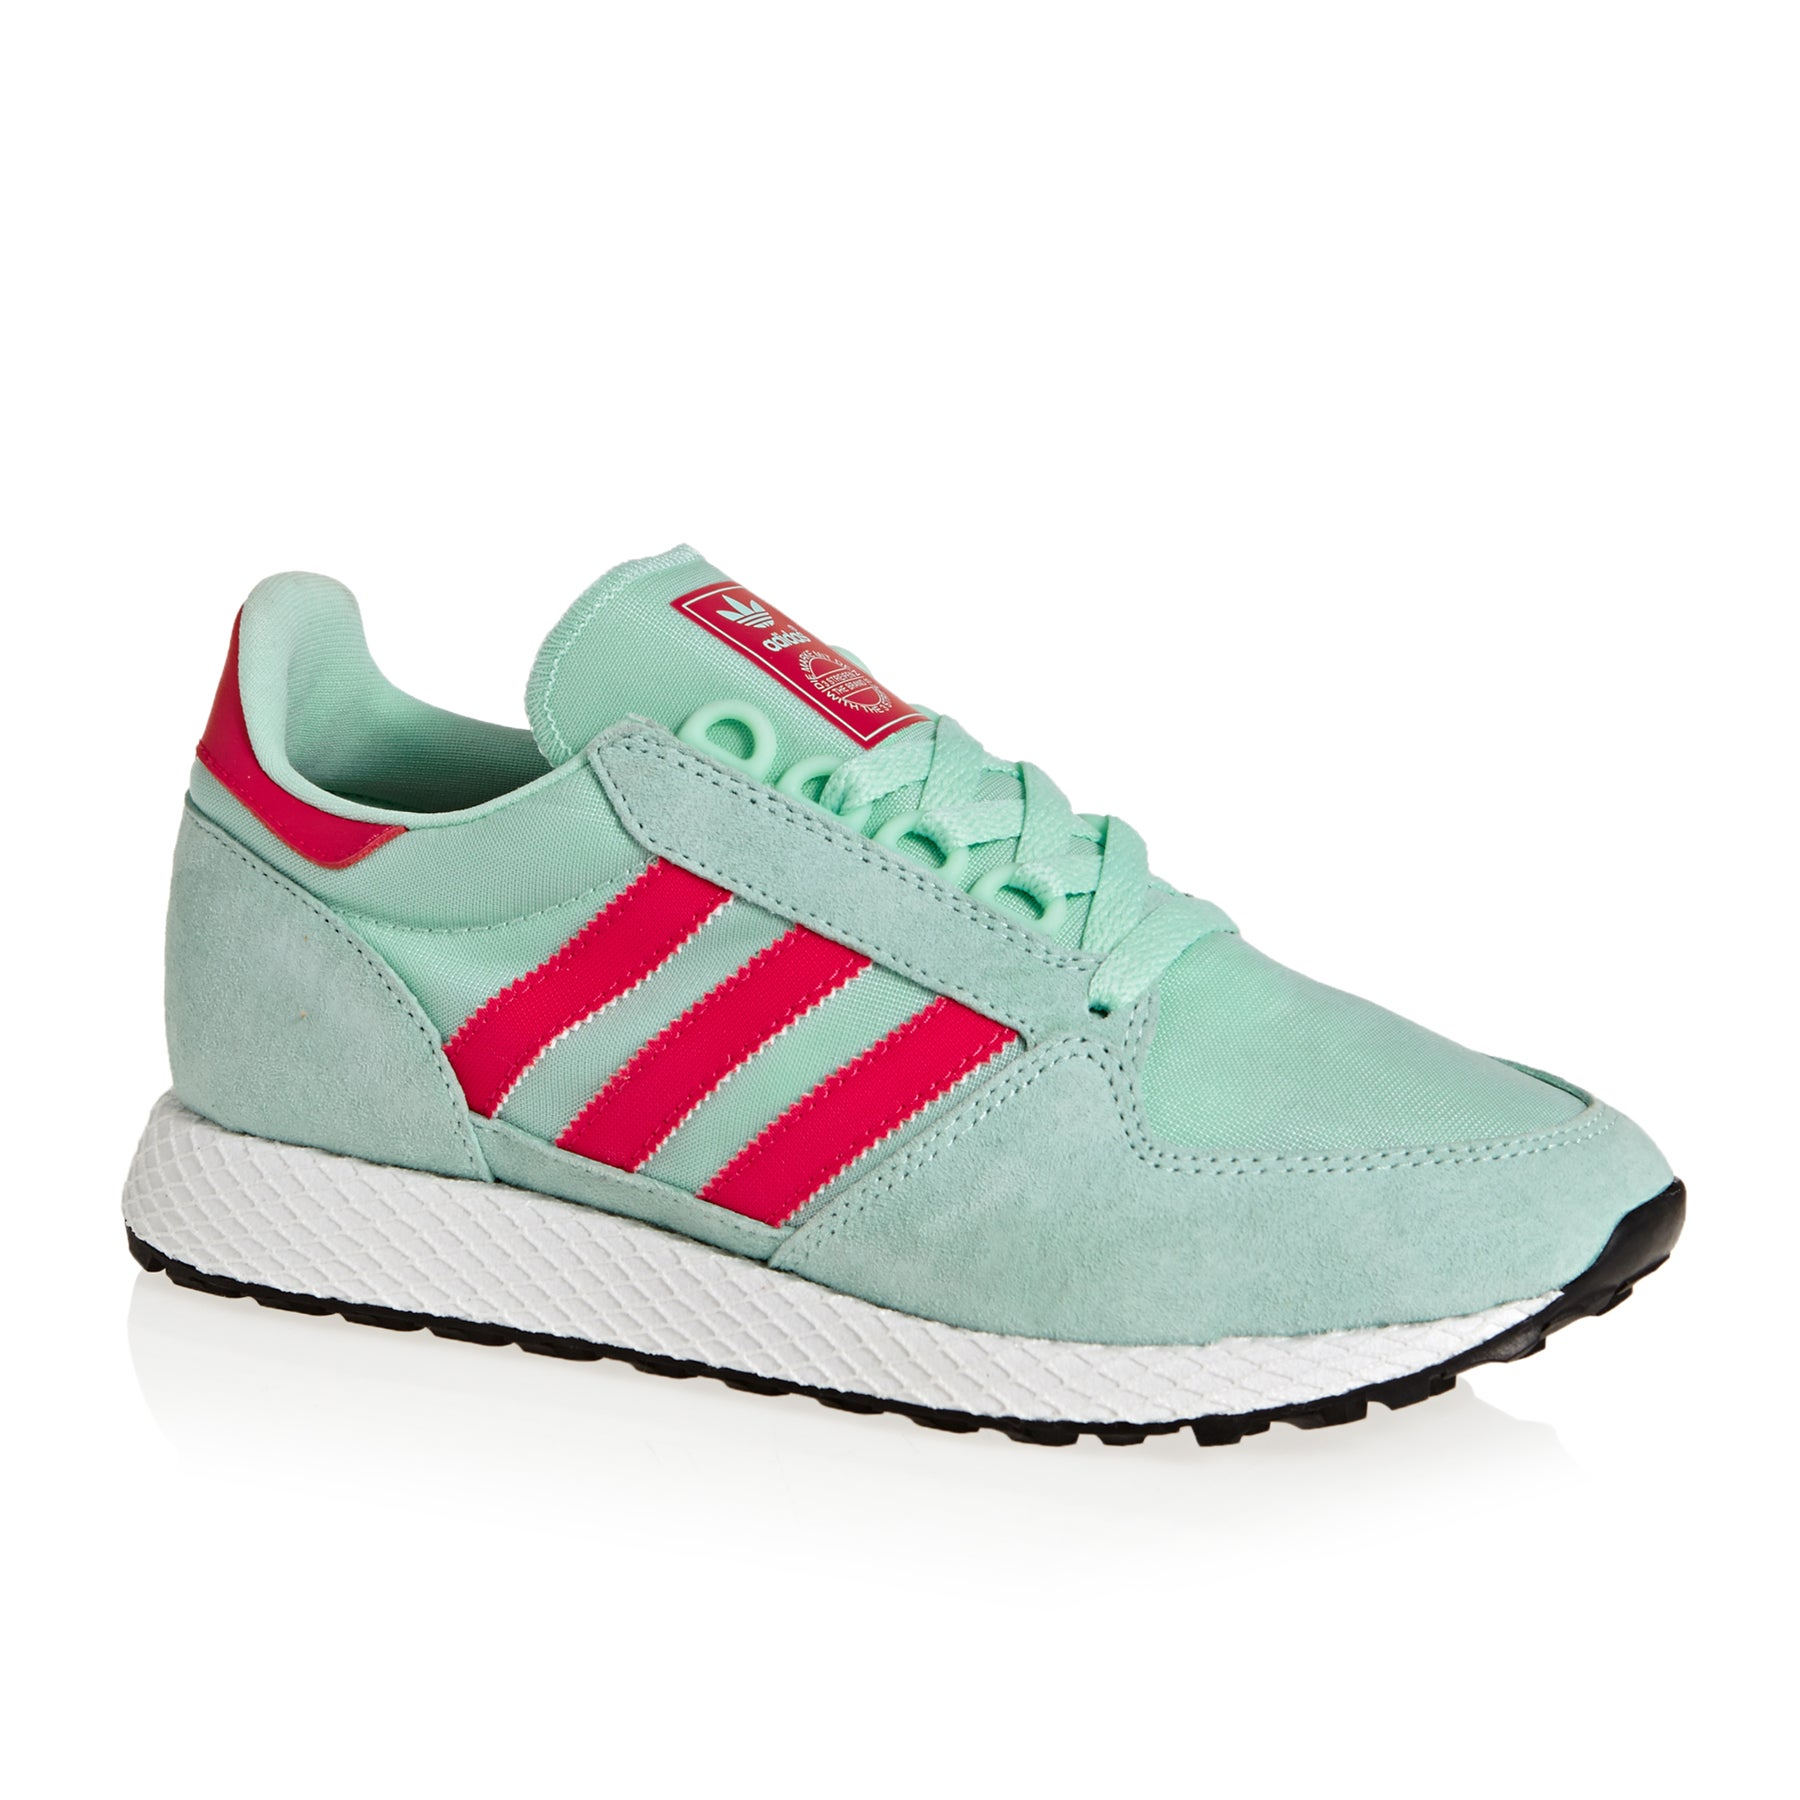 Adidas Originals Forest Grove Womens Shoes - Clear Mint Active Pink Chalk White